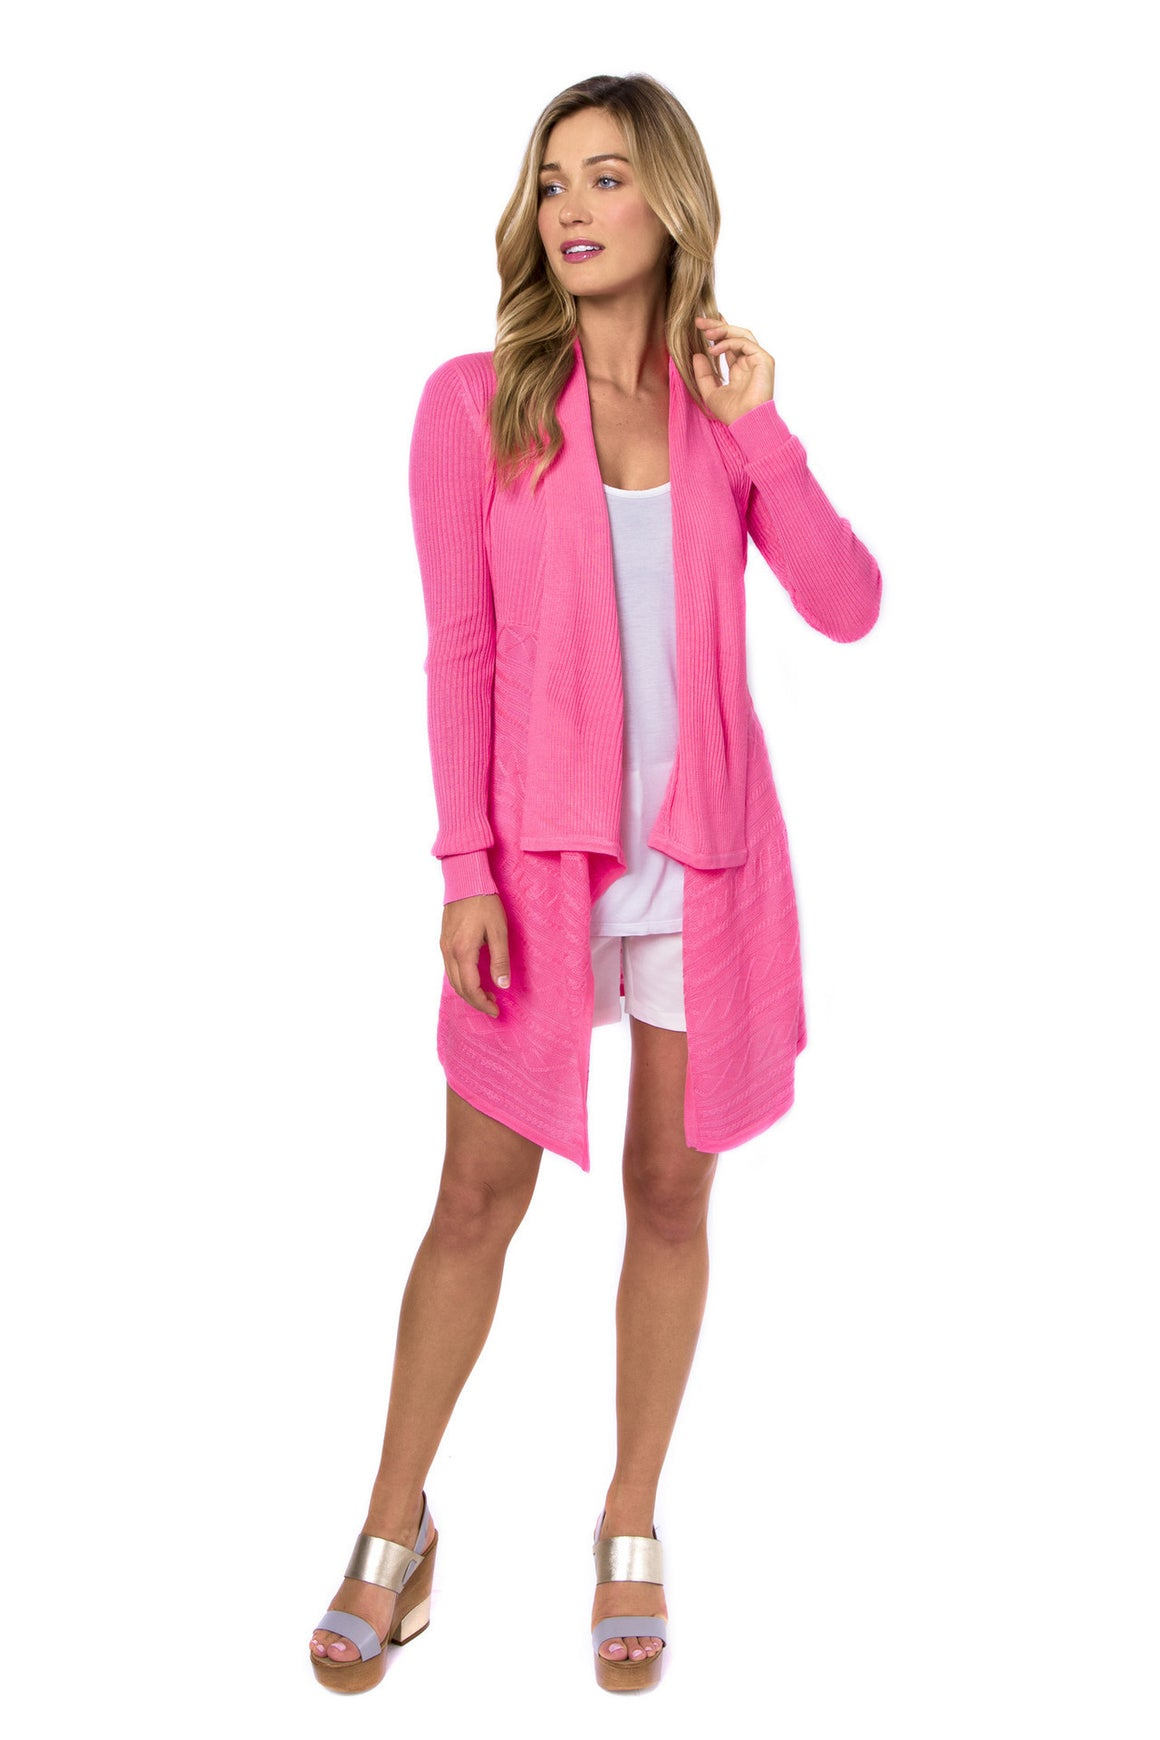 OuterwearJulie Brown Jolie Open CardiganMarvallureCardigan, Julie Brown NYC, Open Cardigan, Outerwear